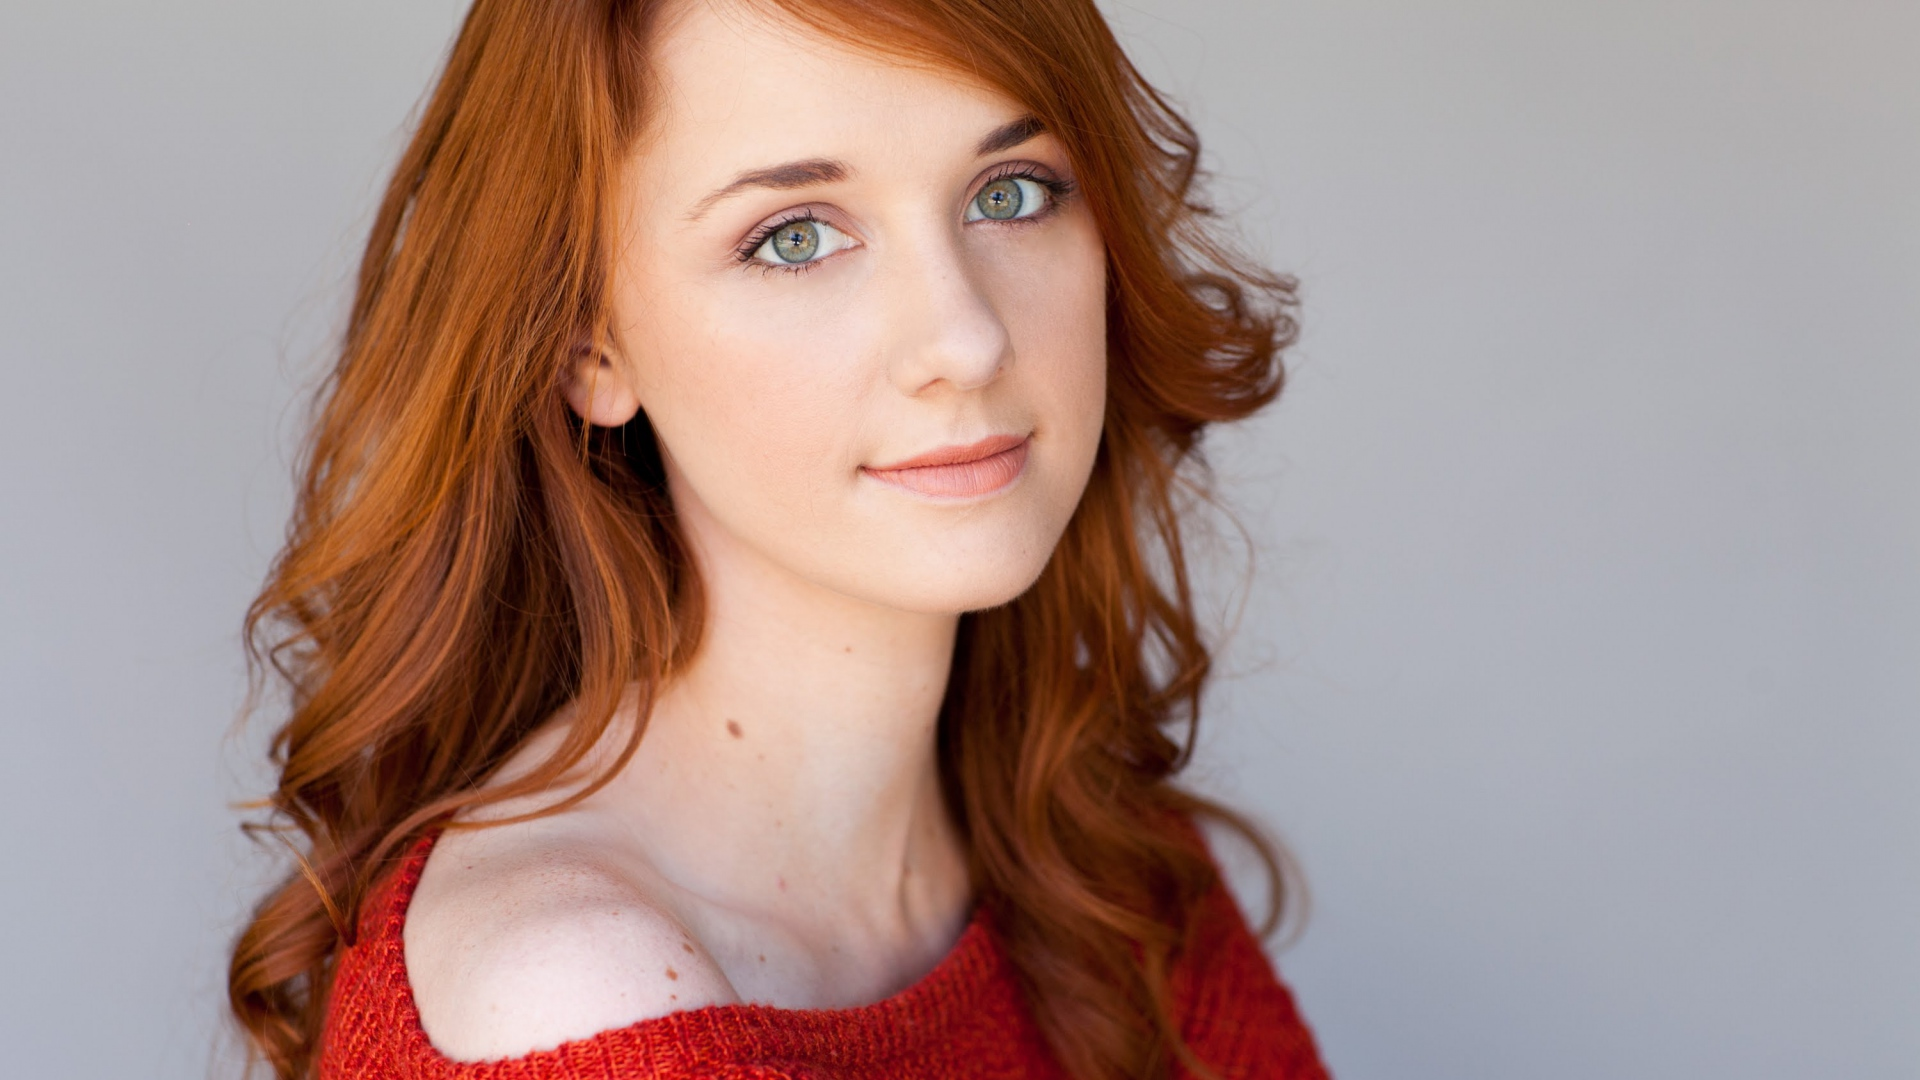 2 Hd Laura Spencer Wallpapers